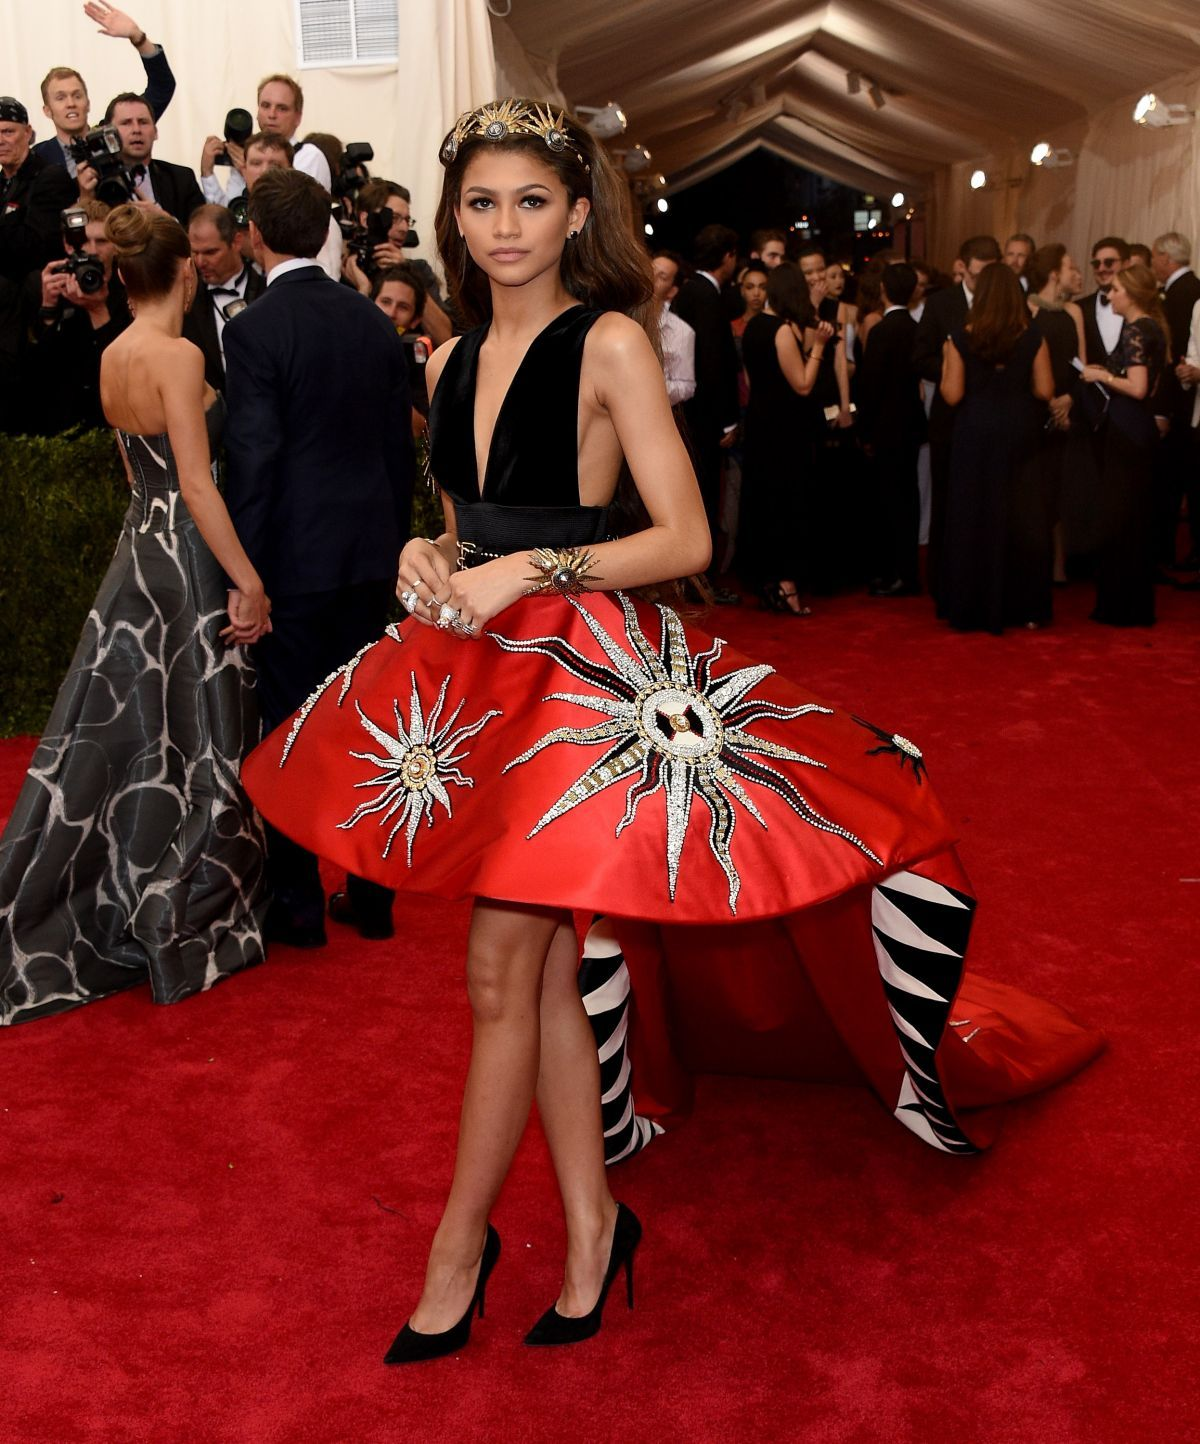 Zendaya At Met Gala 2015 In New York 9 Jpg Click Image To Close This Window Zendaya Outfits Zendaya Met Gala Zendaya Style